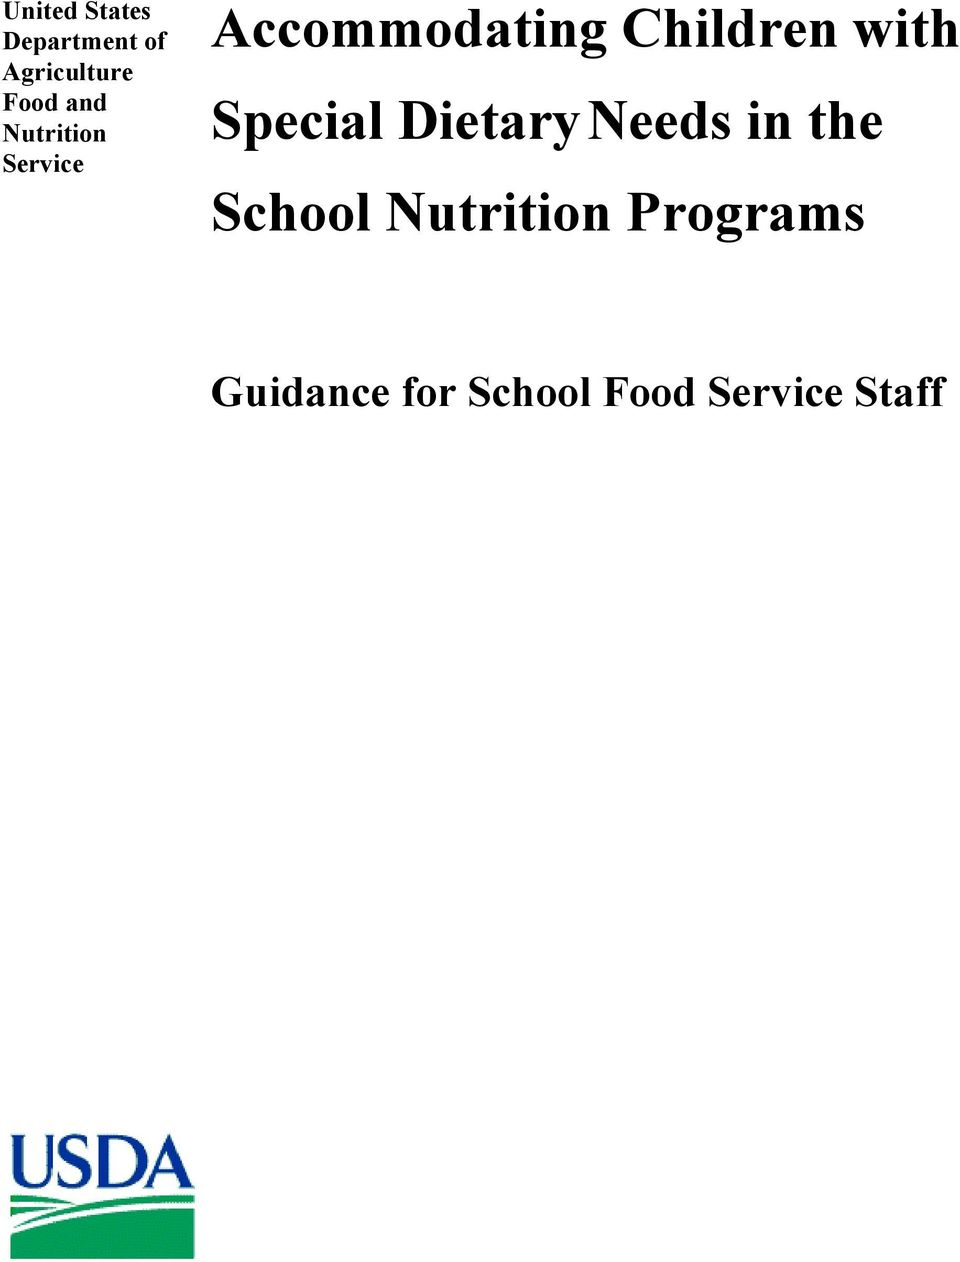 with Special Dietary Needs in the School